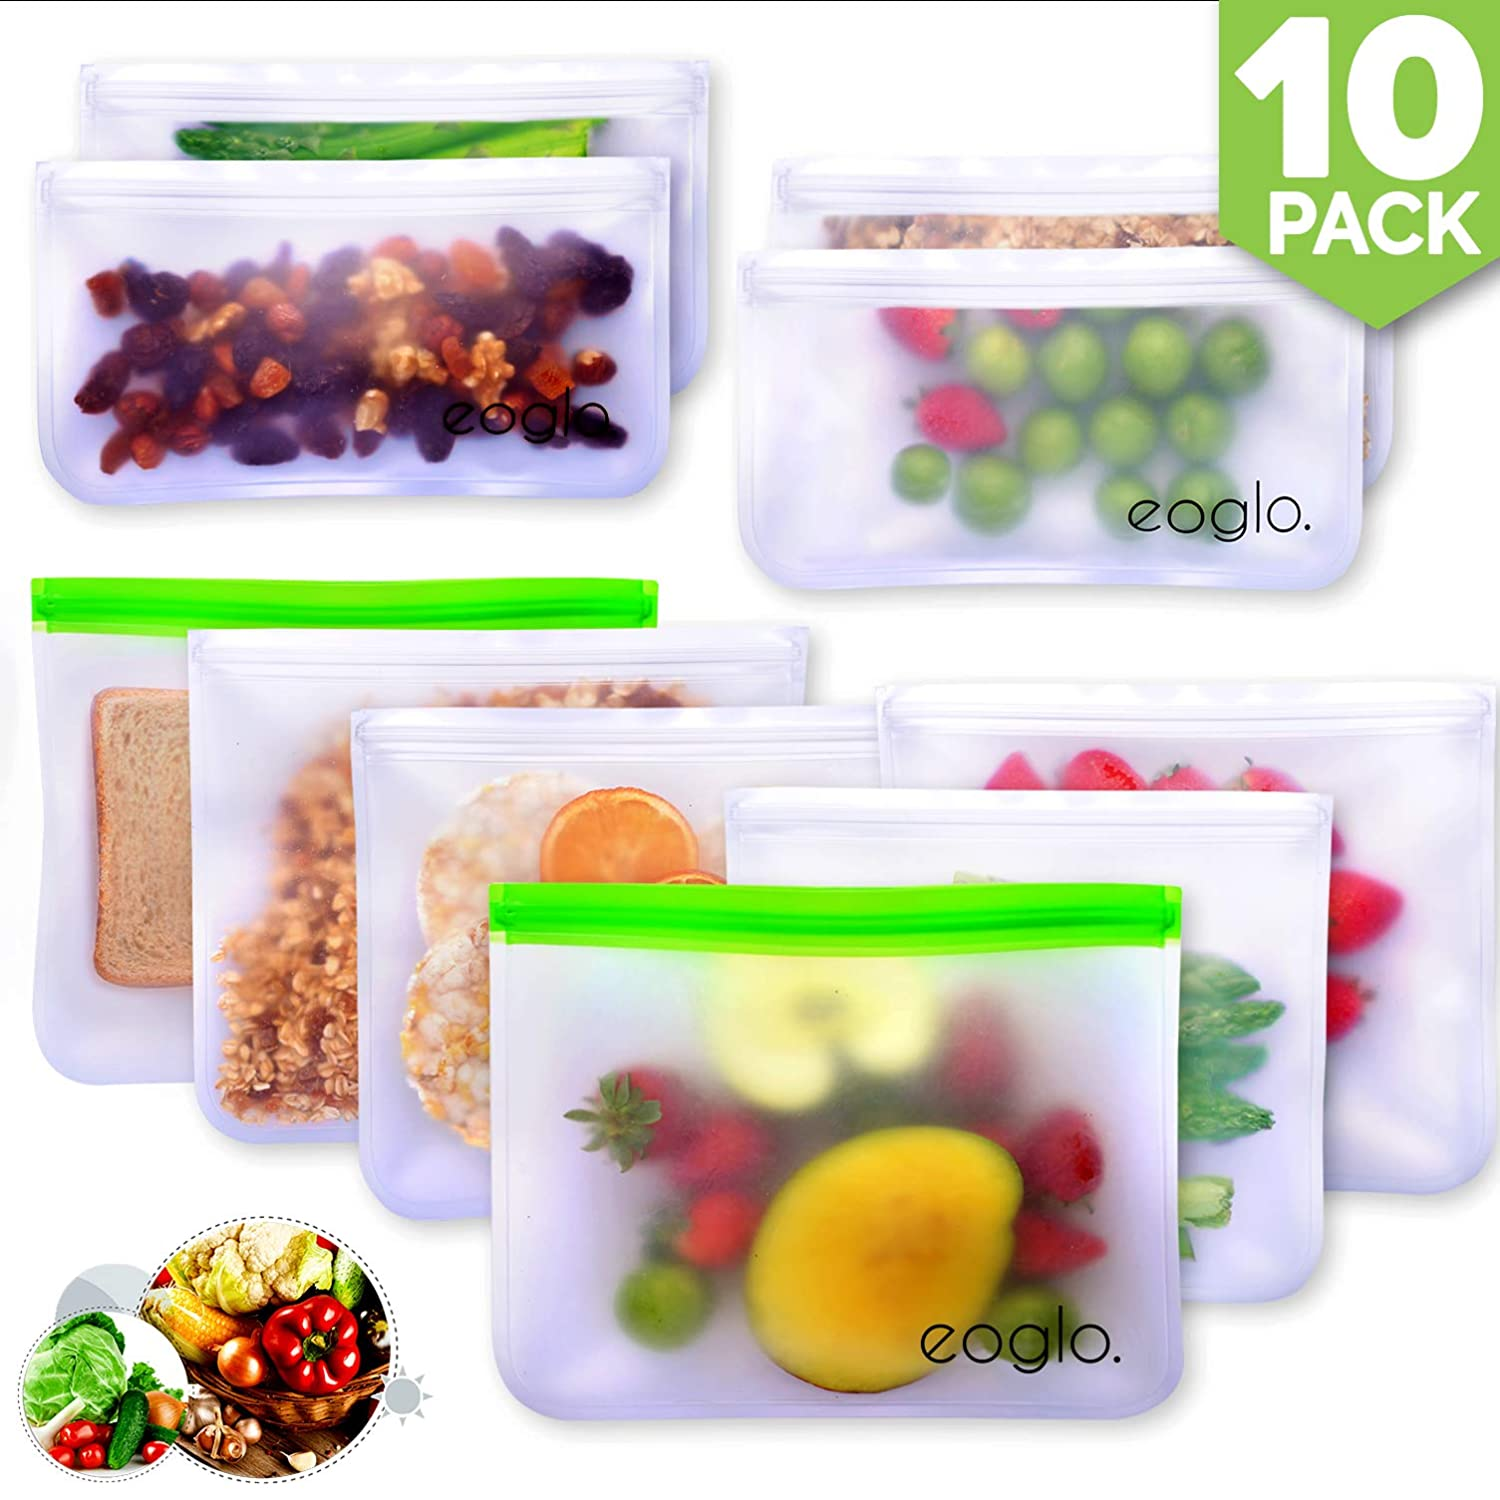 innokitchen Reusable Storage Bags (10 Pack) | To Go + Store + Freeze | Lunch Sandwiches | Kids Food | Snacks and Fruits | Travel Toiletries | EXTRA THICK | LeakProof | Resealable | BPA Free